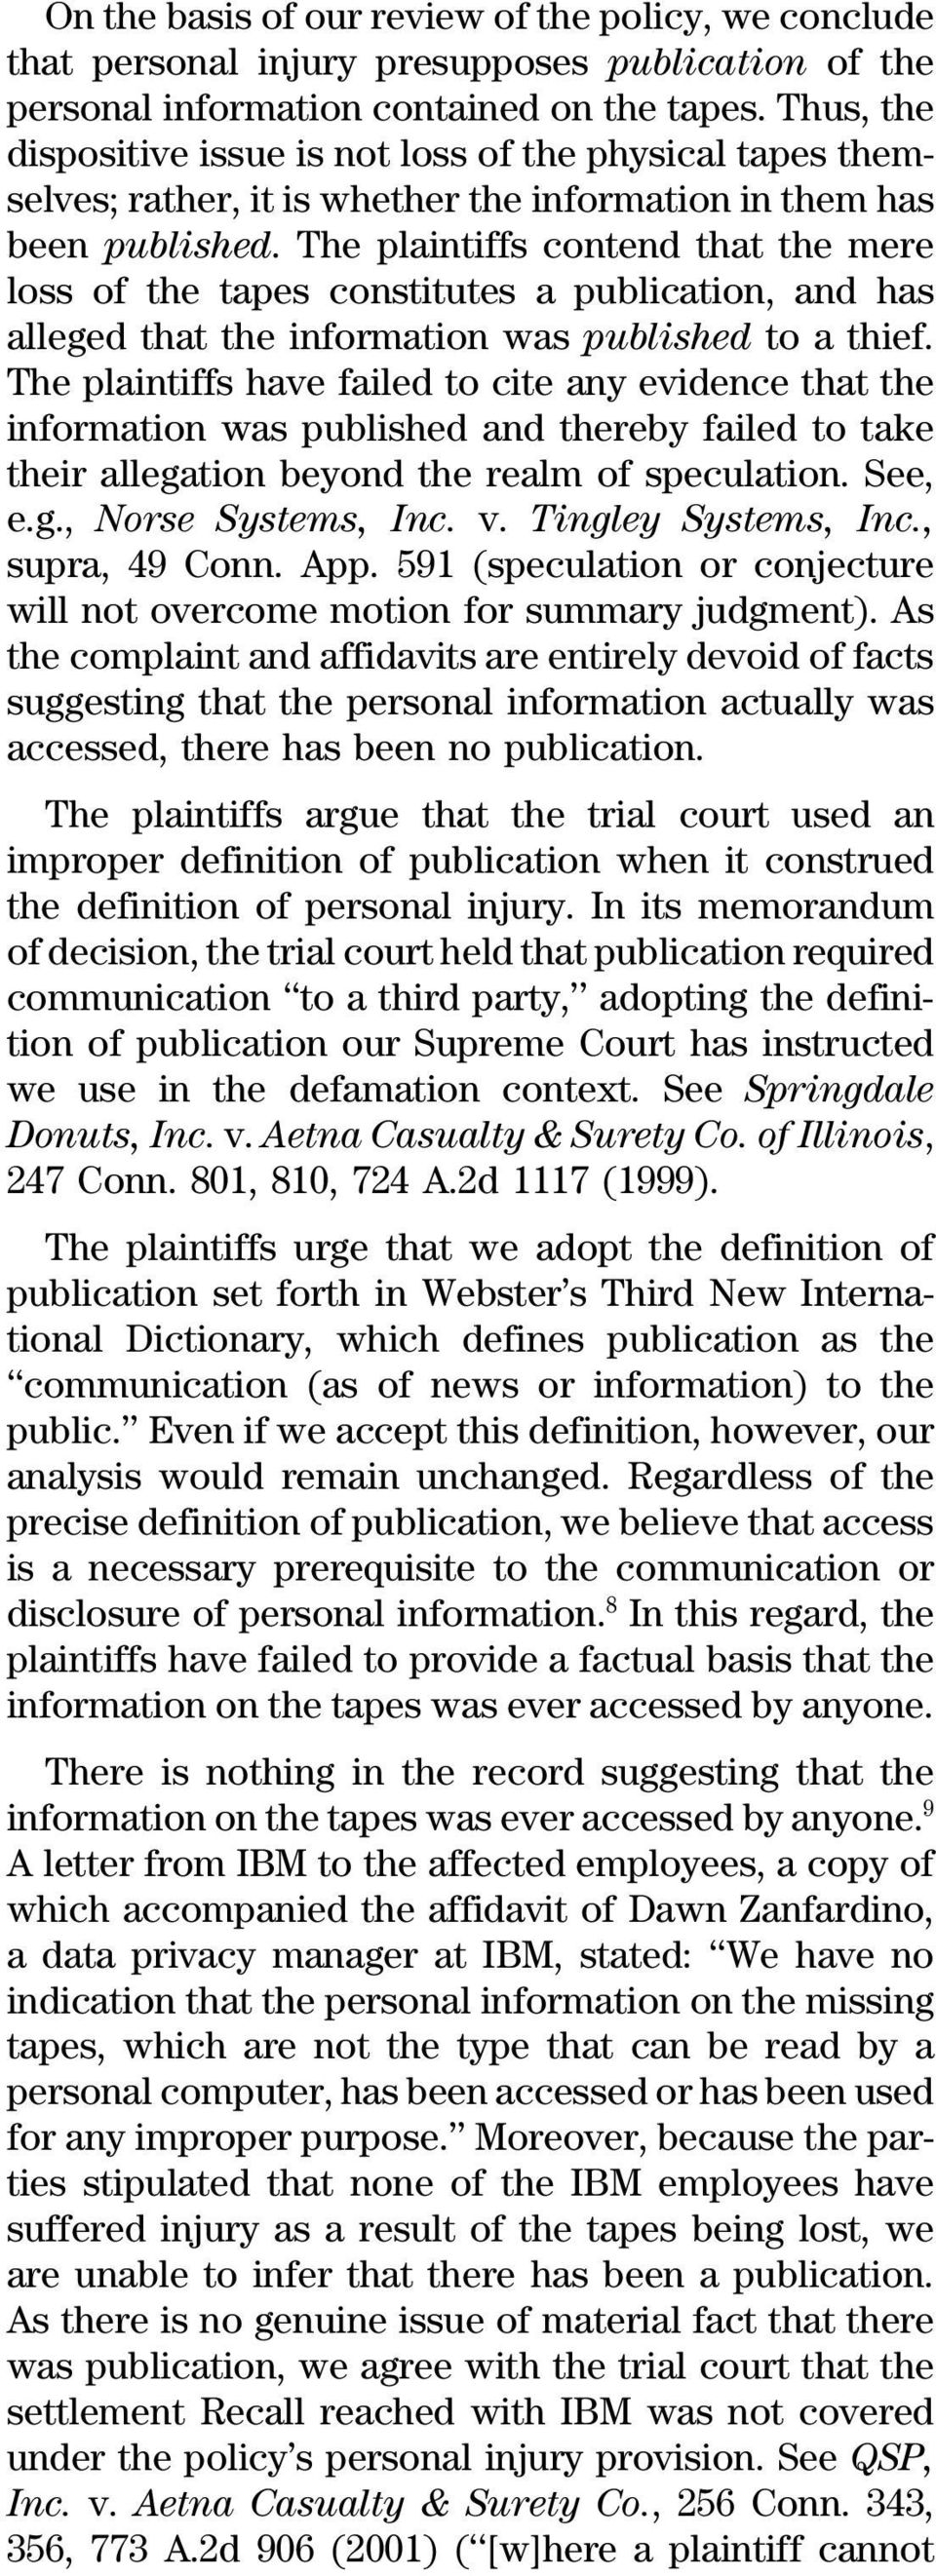 The plaintiffs contend that the mere loss of the tapes constitutes a publication, and has alleged that the information was published to a thief.